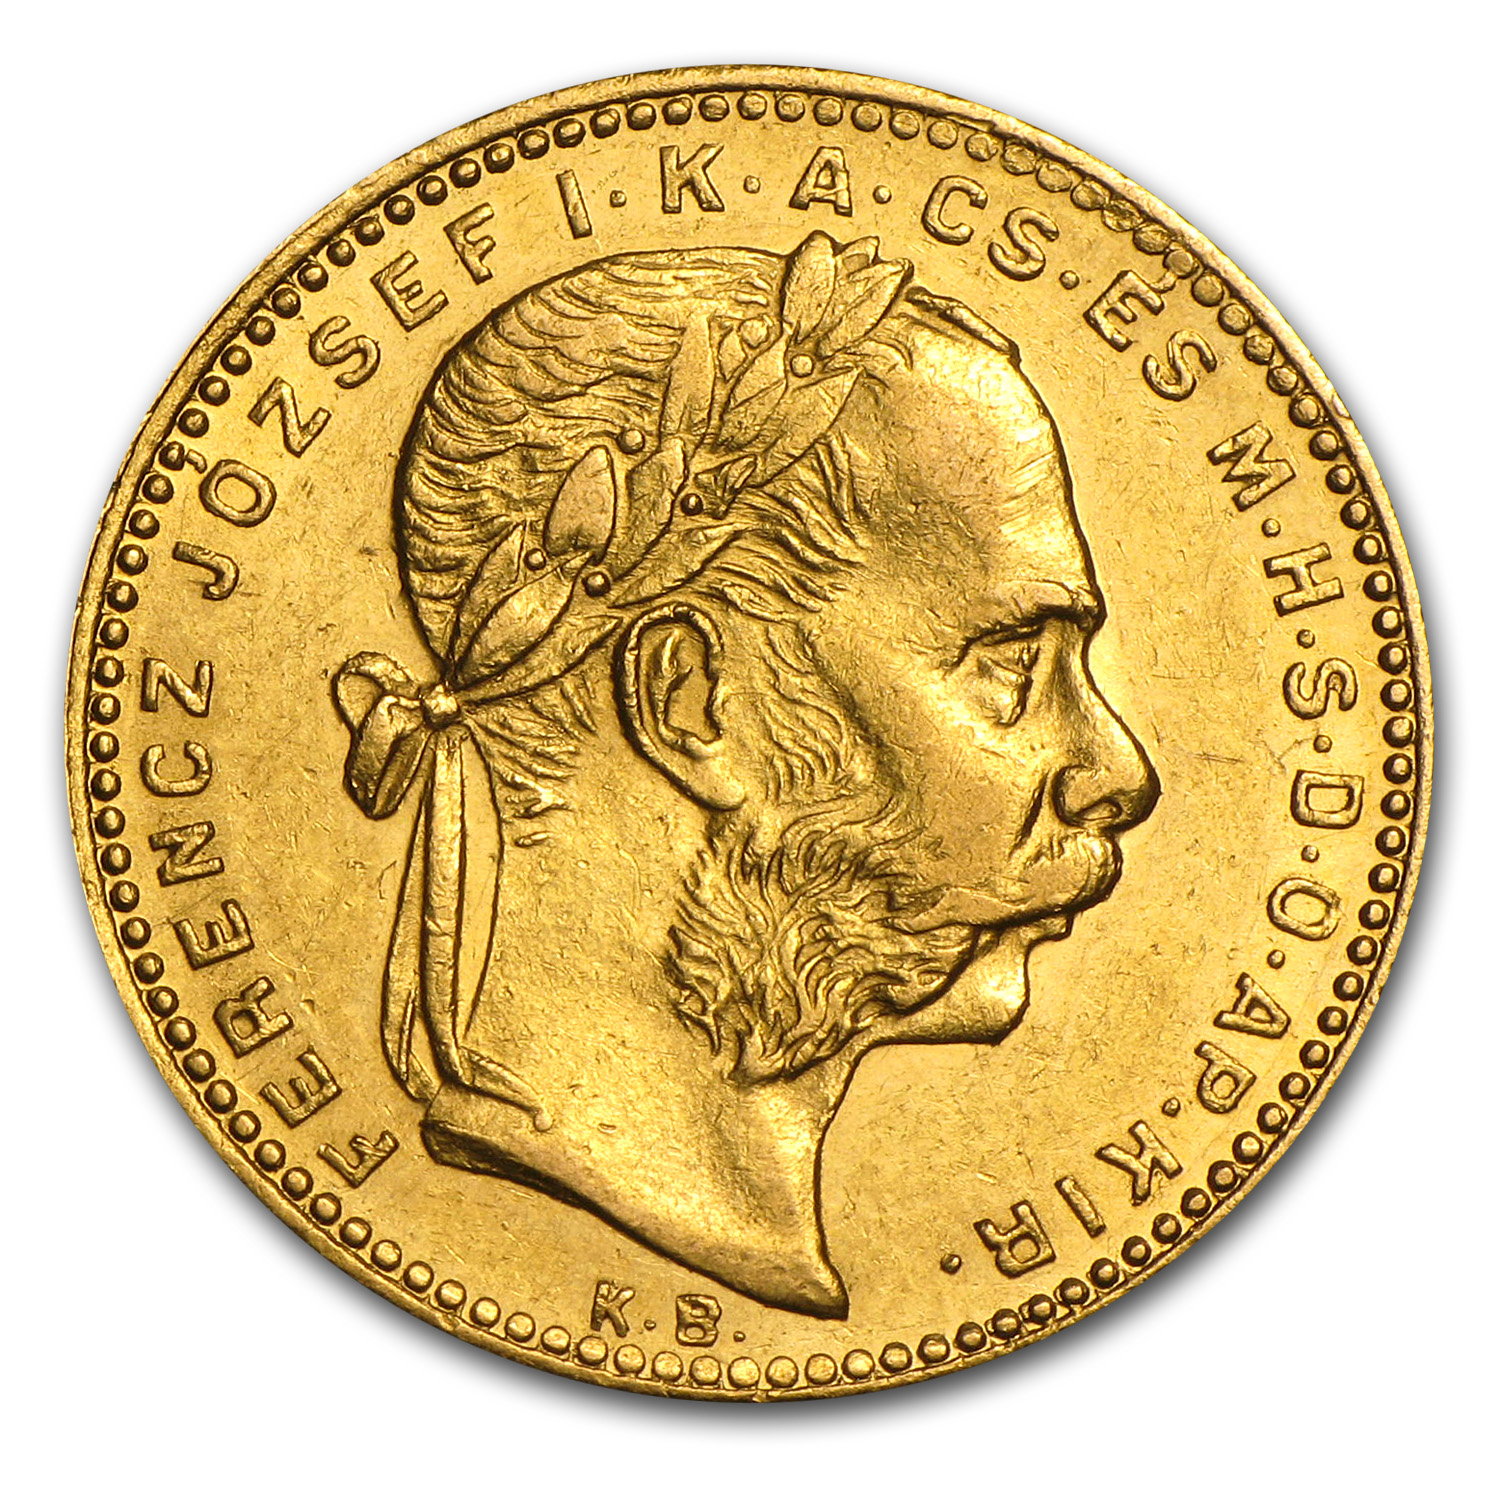 1870-1892 Hungary Gold 8 Forint/20 Franc Avg Circ